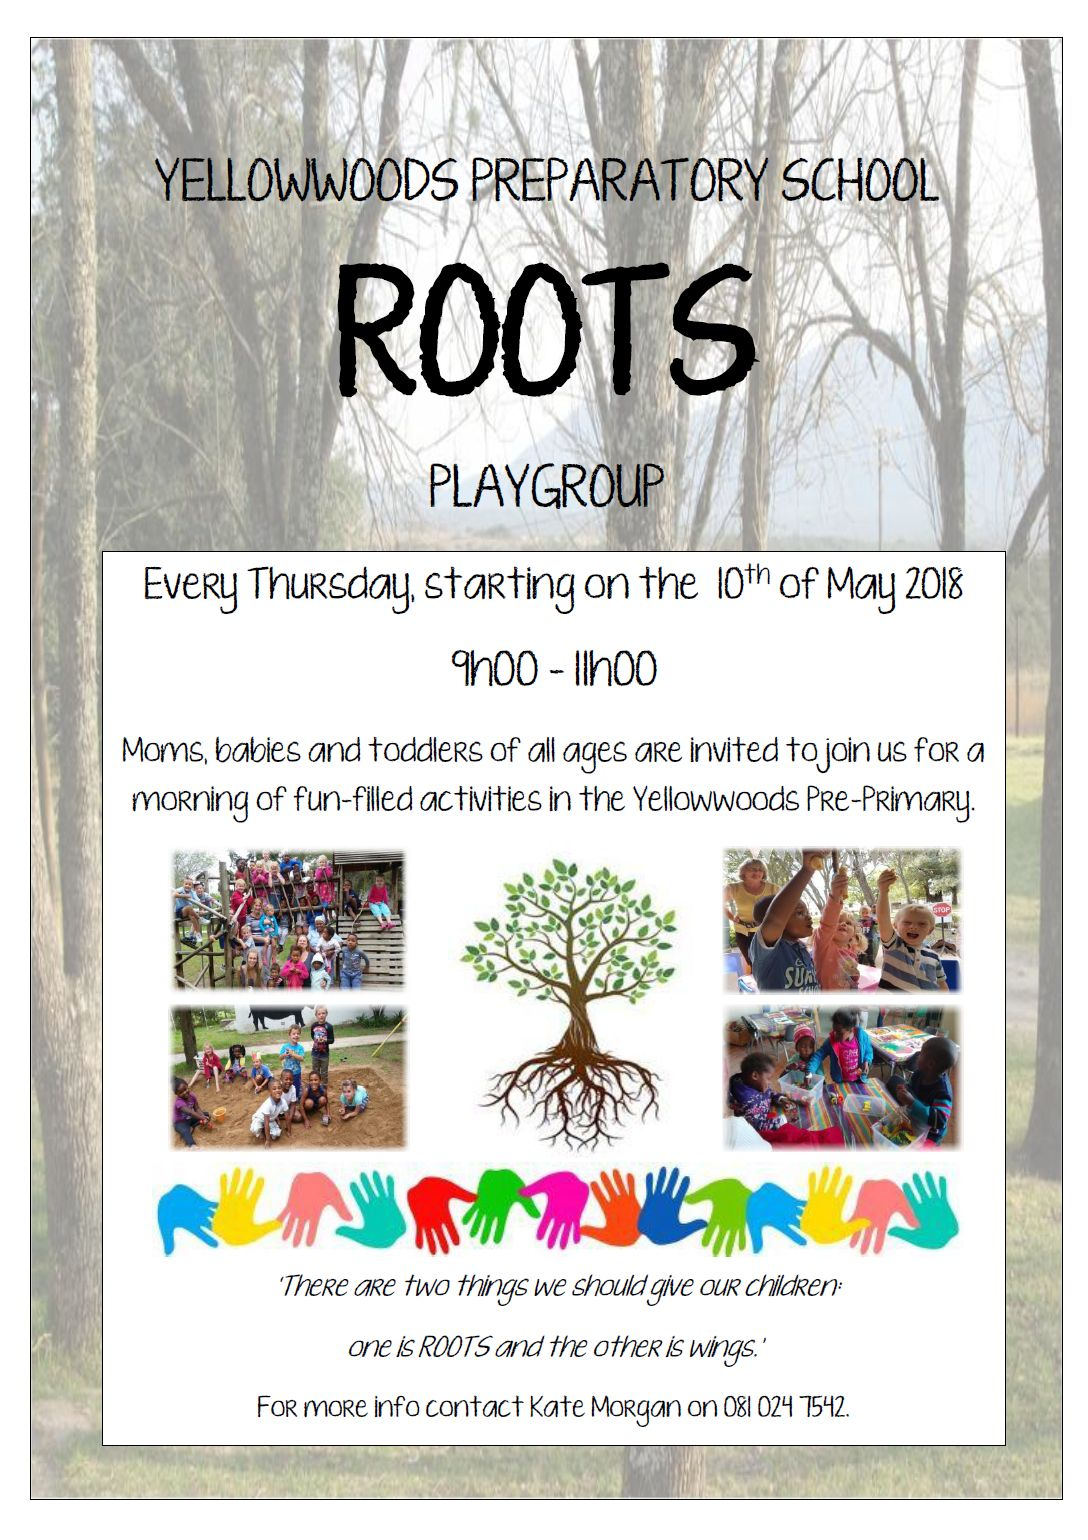 roots_playgroup.jpg